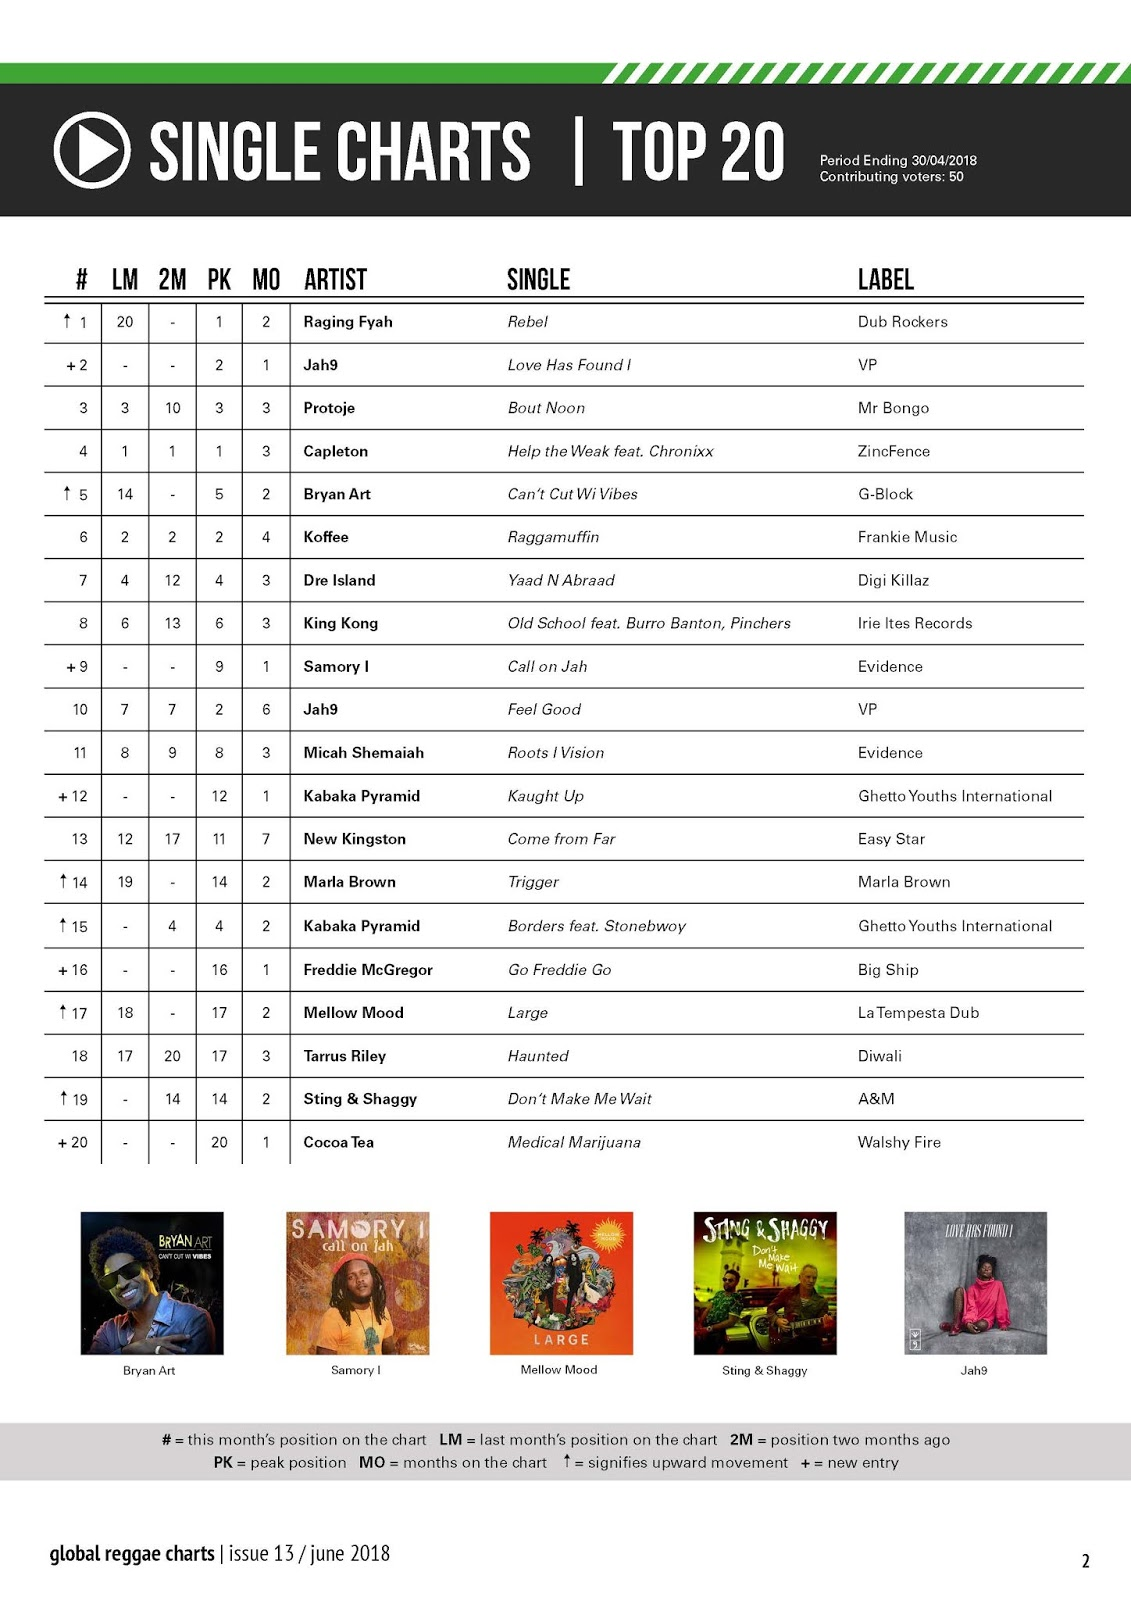 ItaL rOOts RaDio: Global Reggae Charts - June 2018 Issue #13